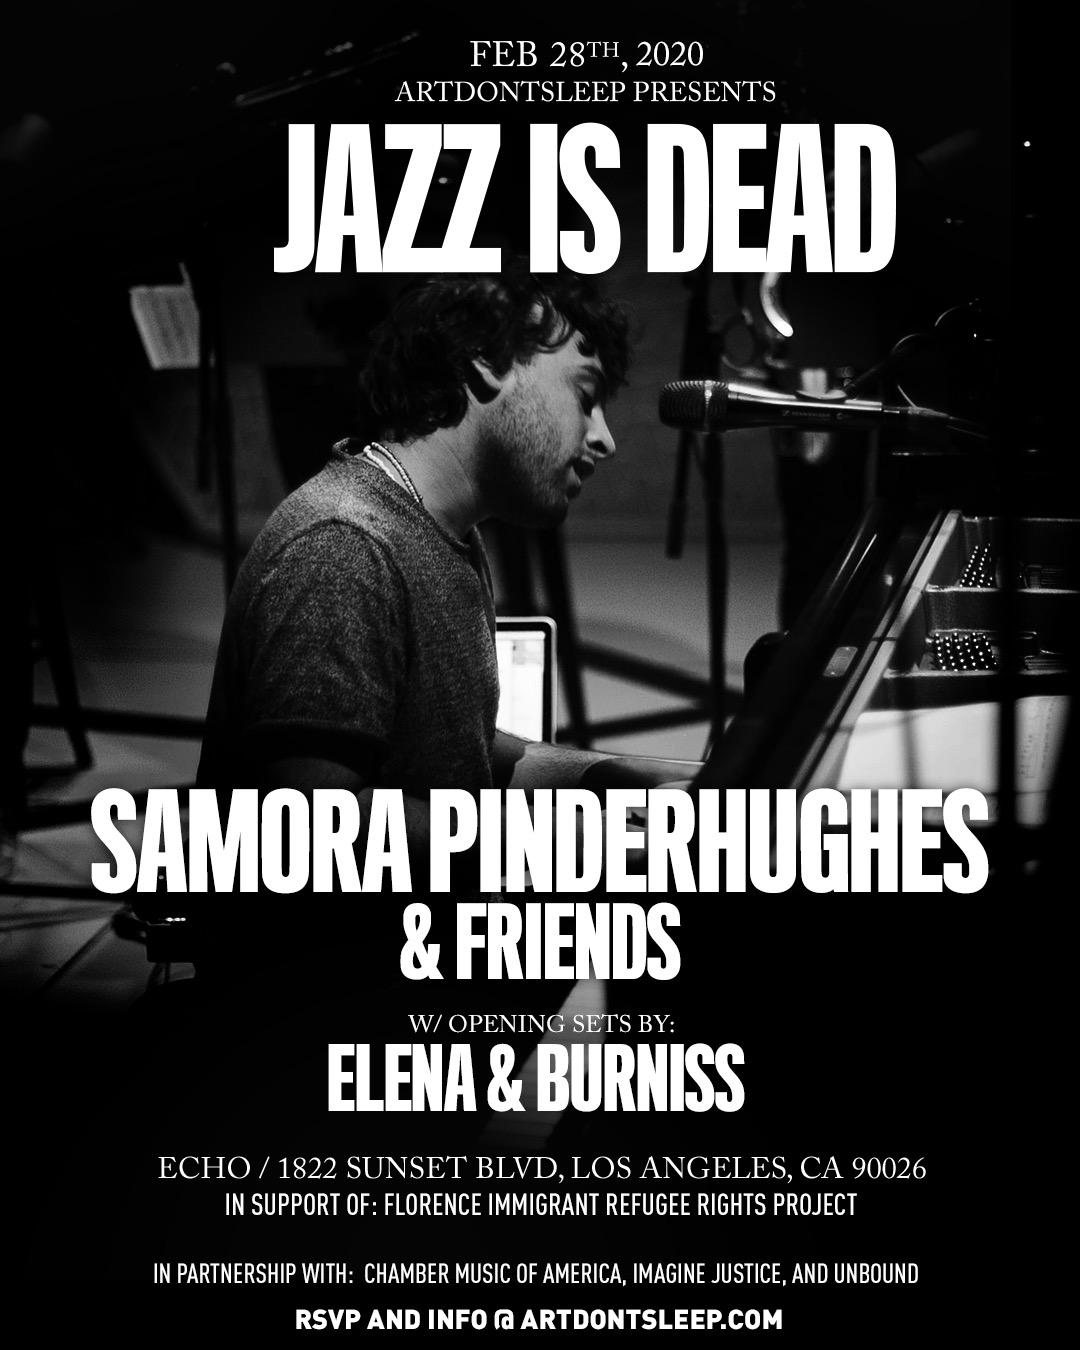 JAZZ IS DEAD: SAMORA PINDERHUGHES & FRIENDS